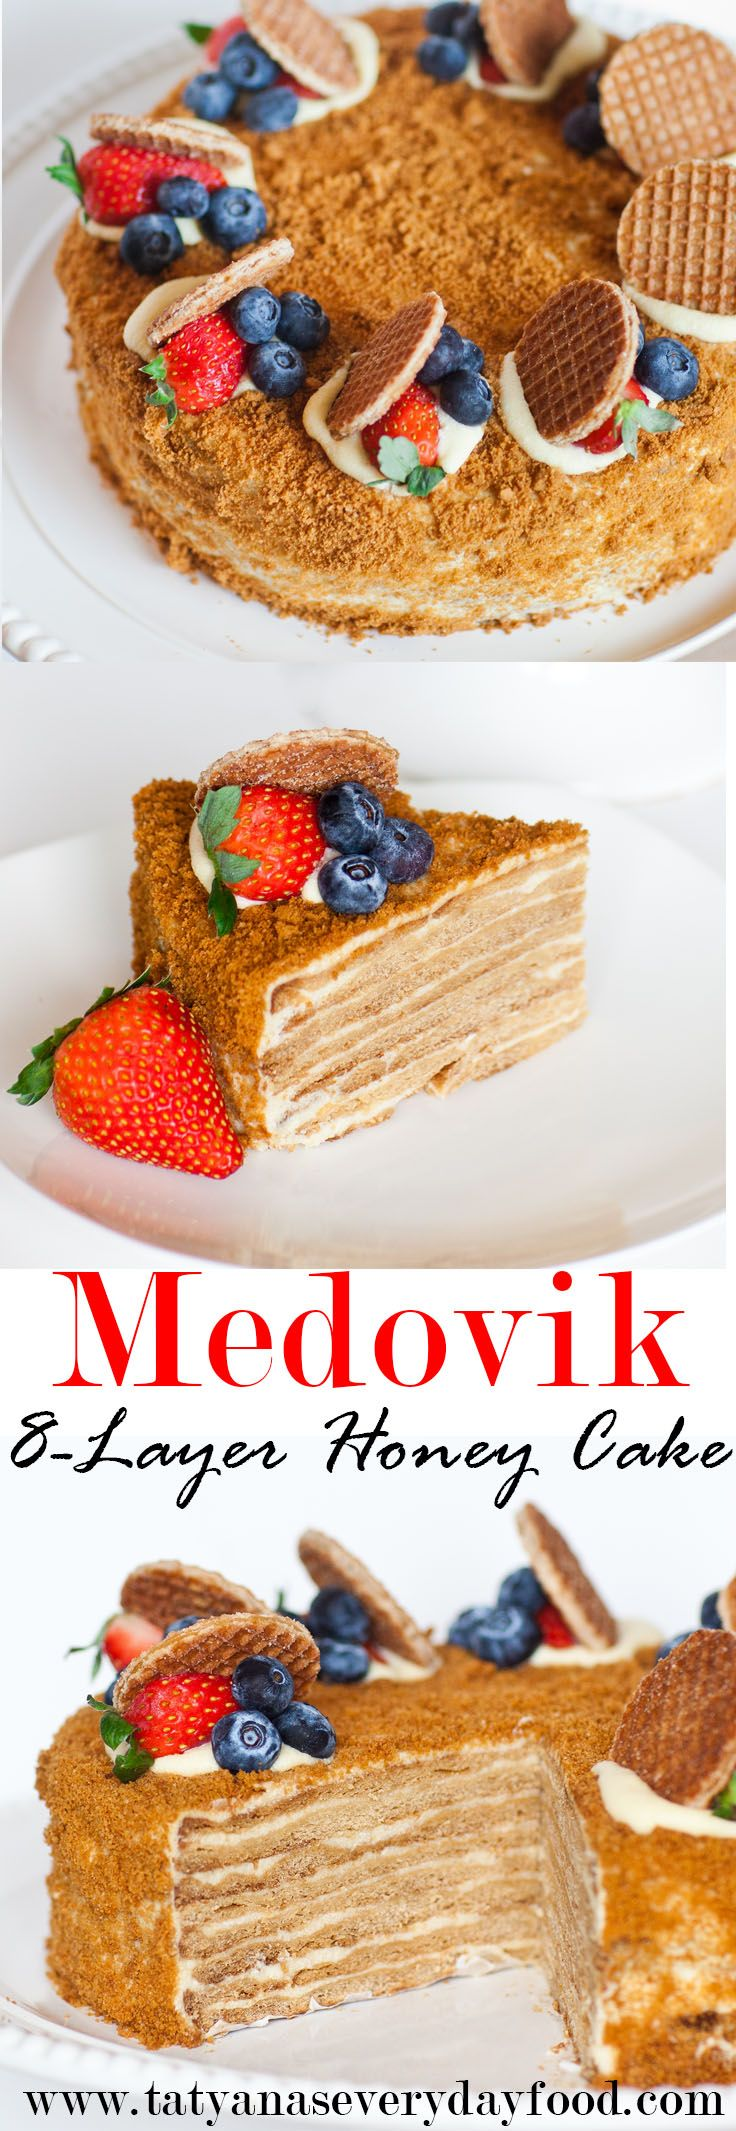 """The famous """"Medovik"""" cake:8 wafer-thin honey cake layers filled with a creamy custard creme! This delicious cake is often enjoyed with tea after dinner in homes across Ukraine and Russia! The custard creme recipe I'm sharing with you was passed down to me from my mother, who has been making this cake and creme for […]"""